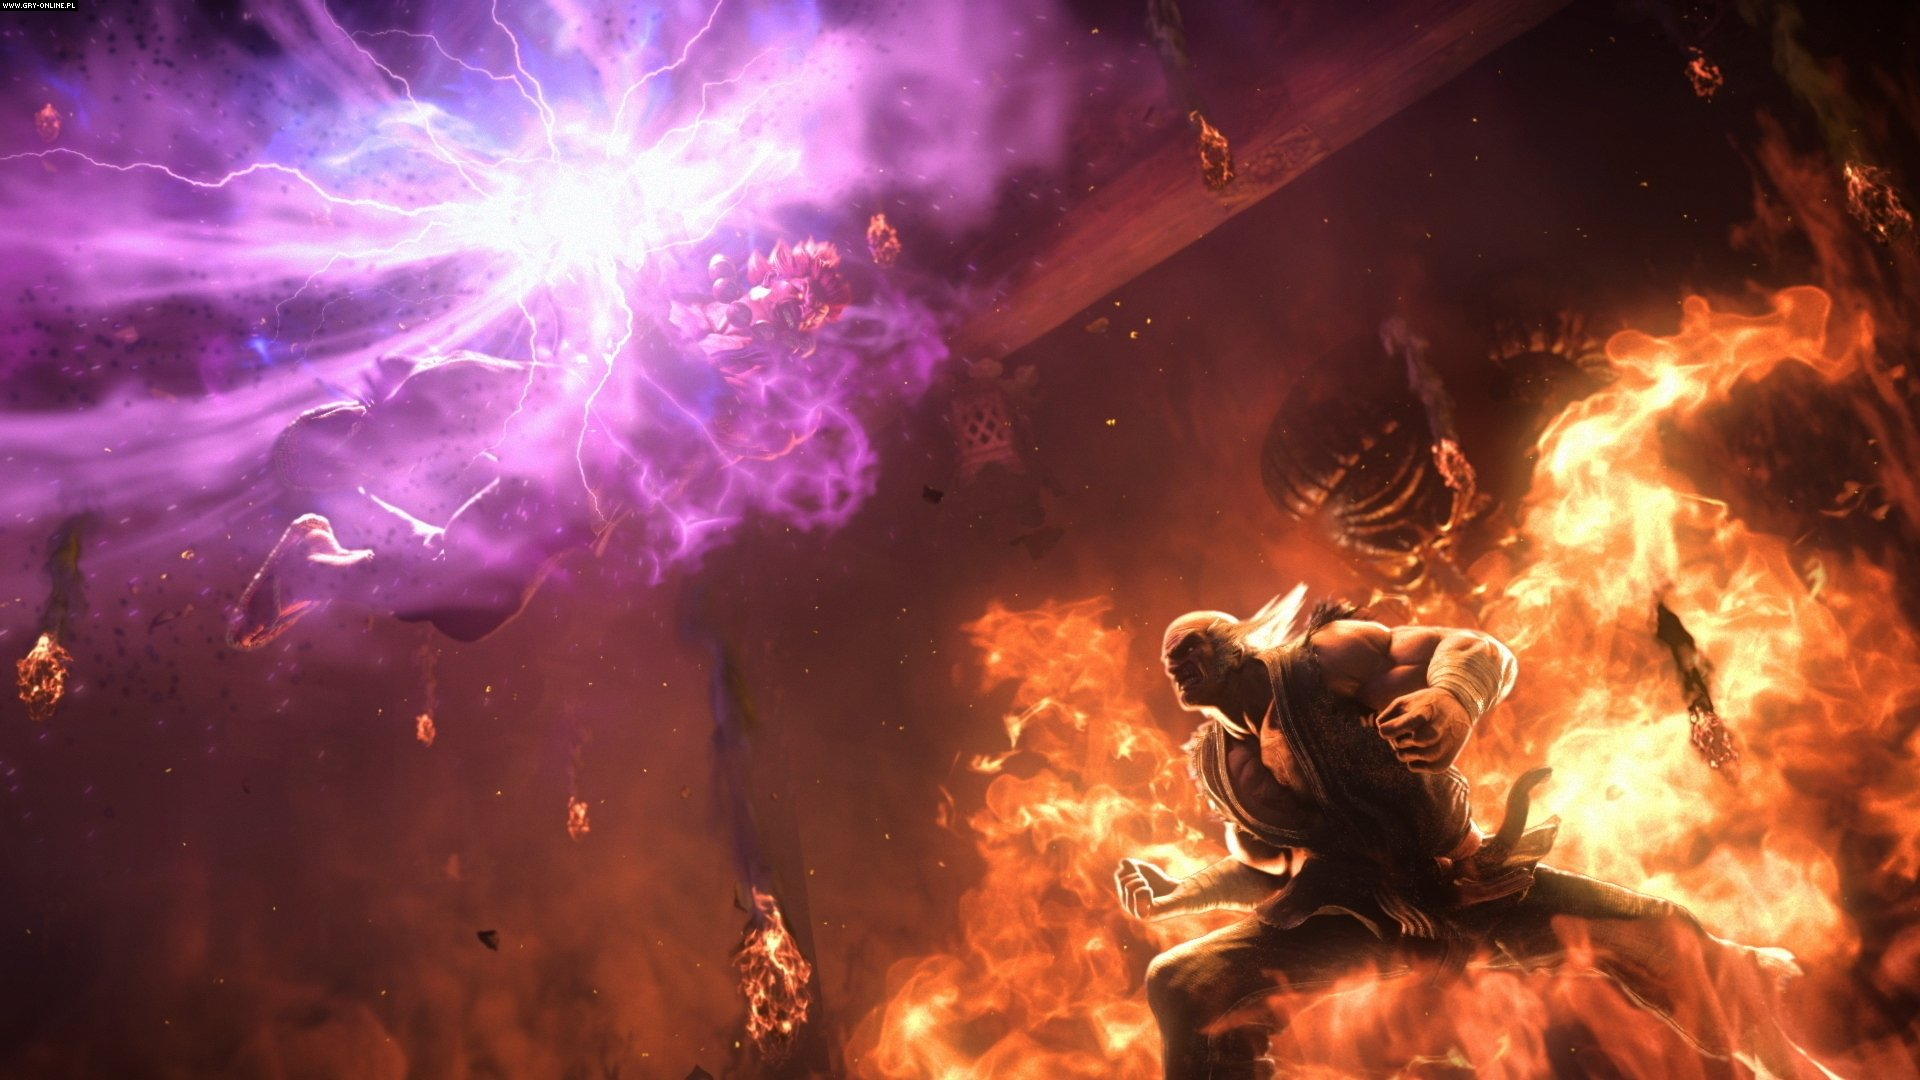 Tekken 7 PS4, XONE Gry Screen 213/237, Bandai Namco Entertainment